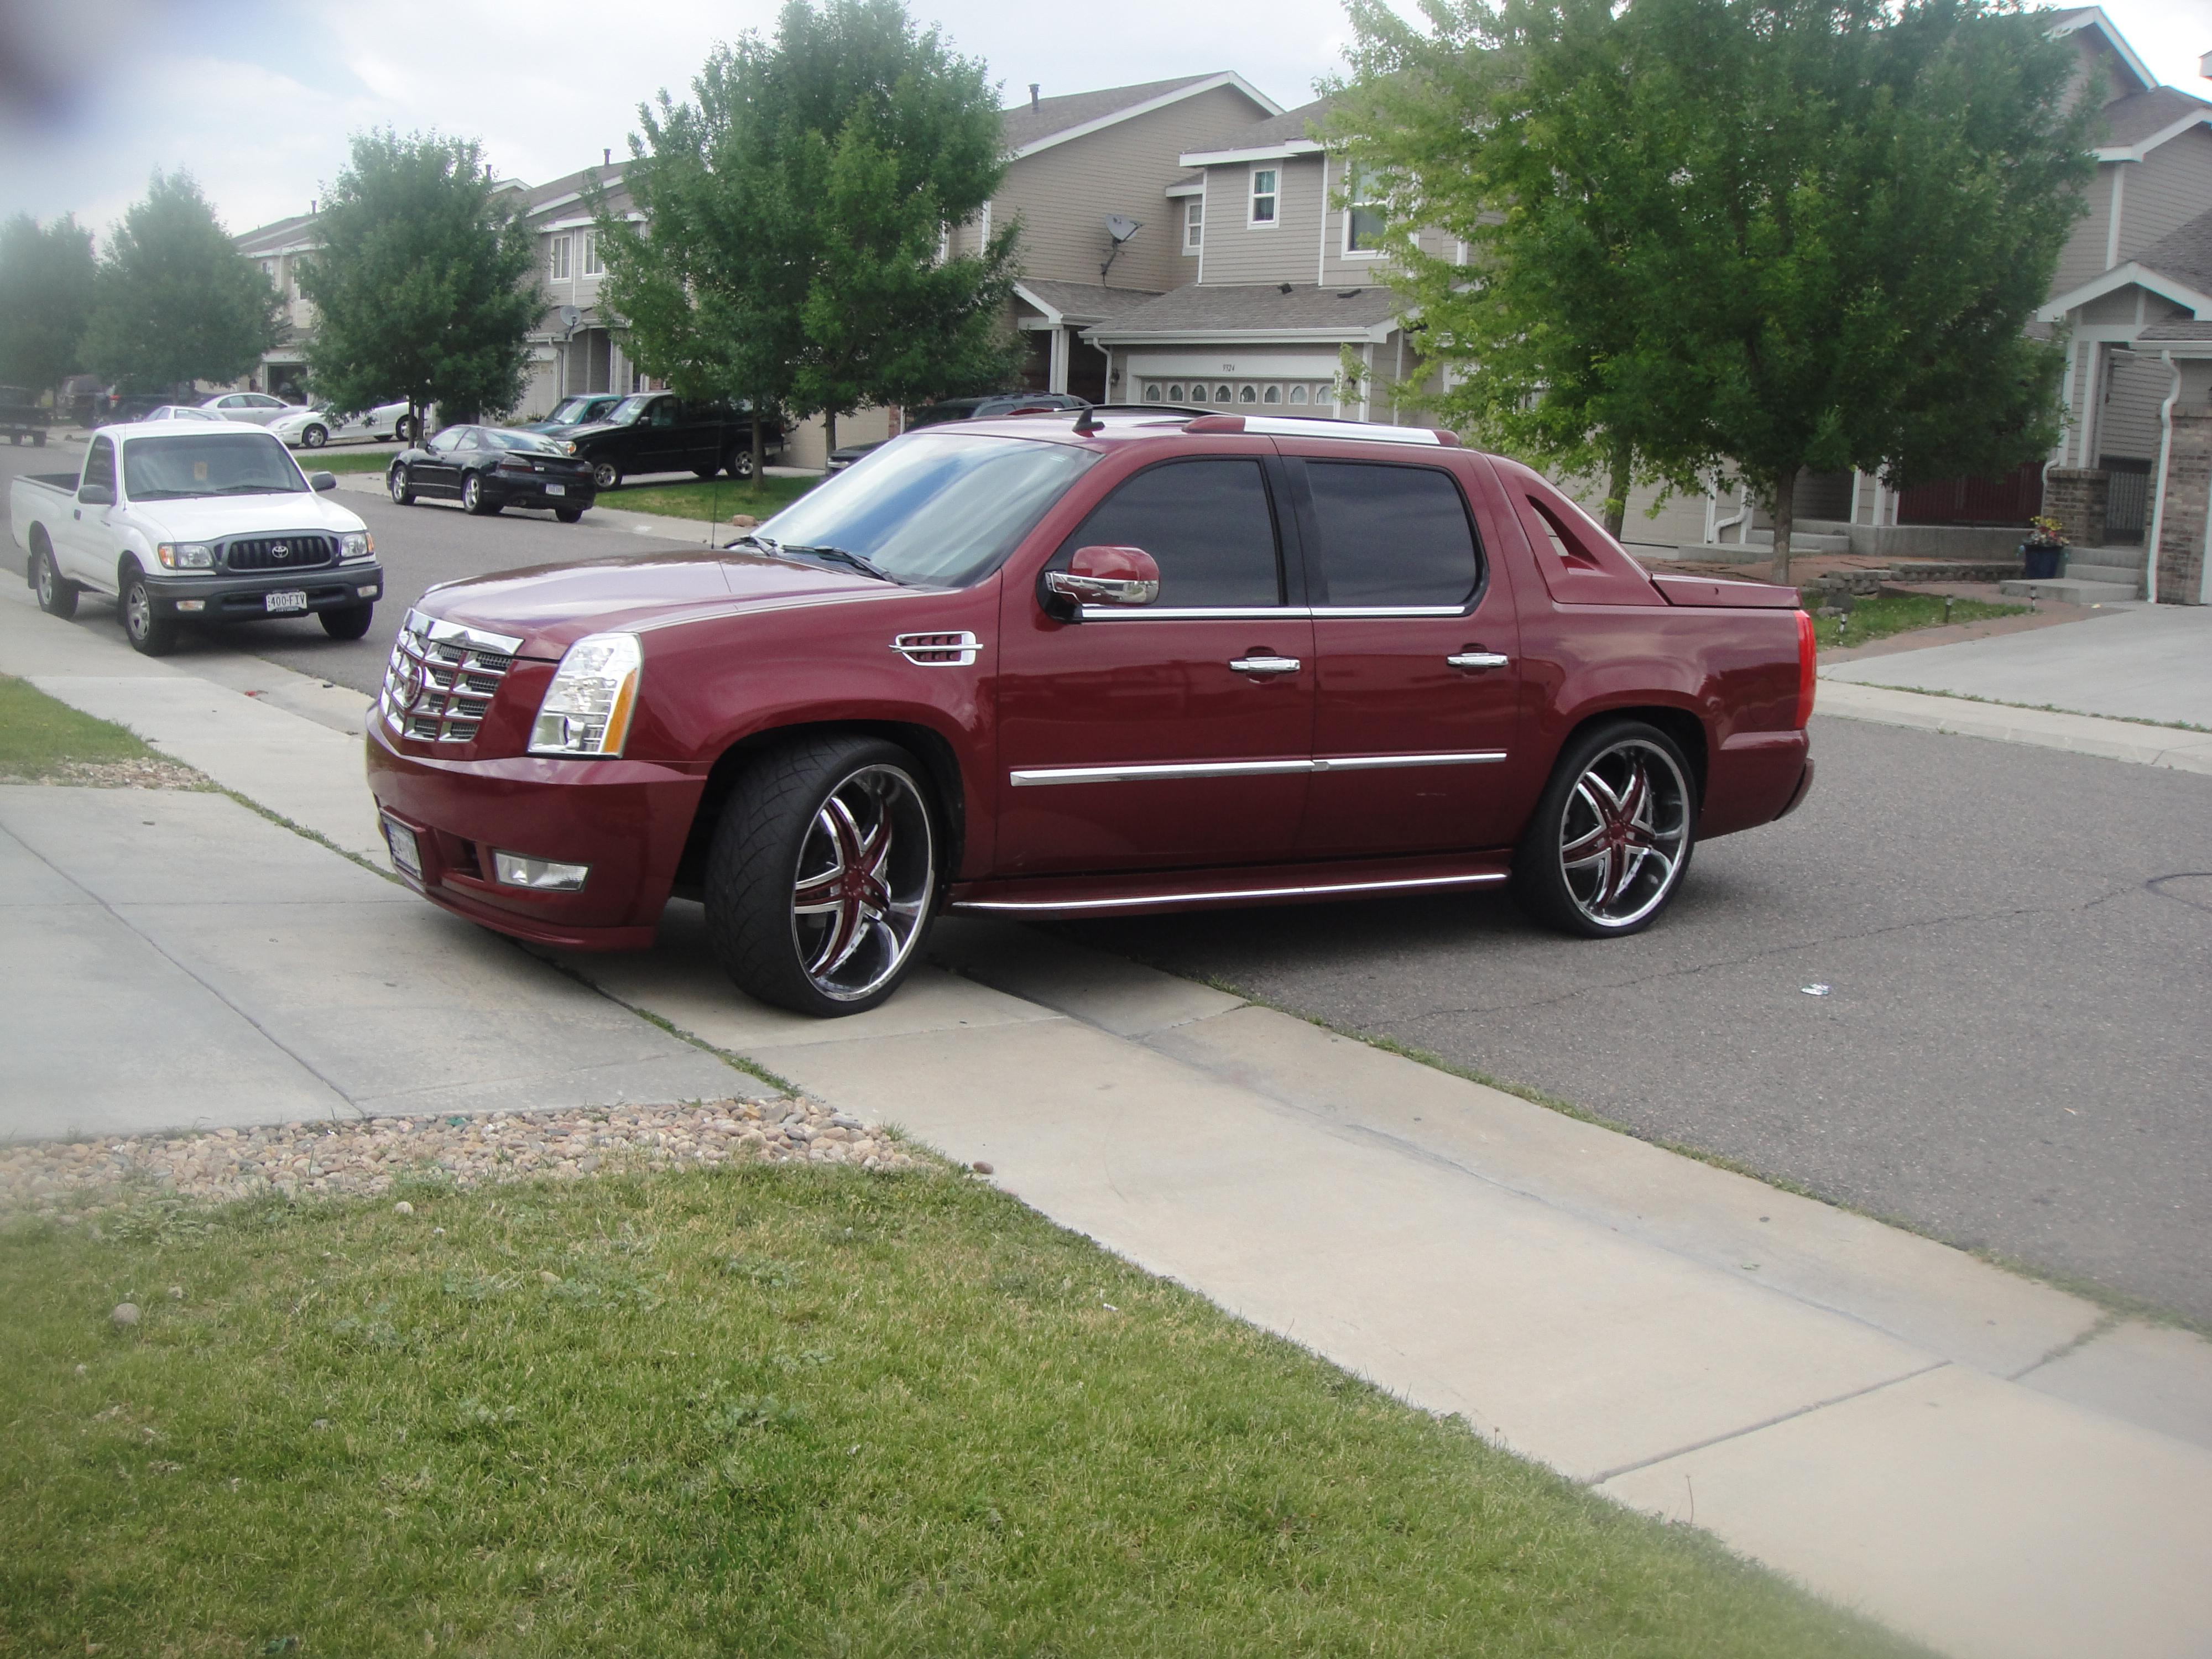 cadillac speed top partner and dub ext truck escalade cars news ex reviews